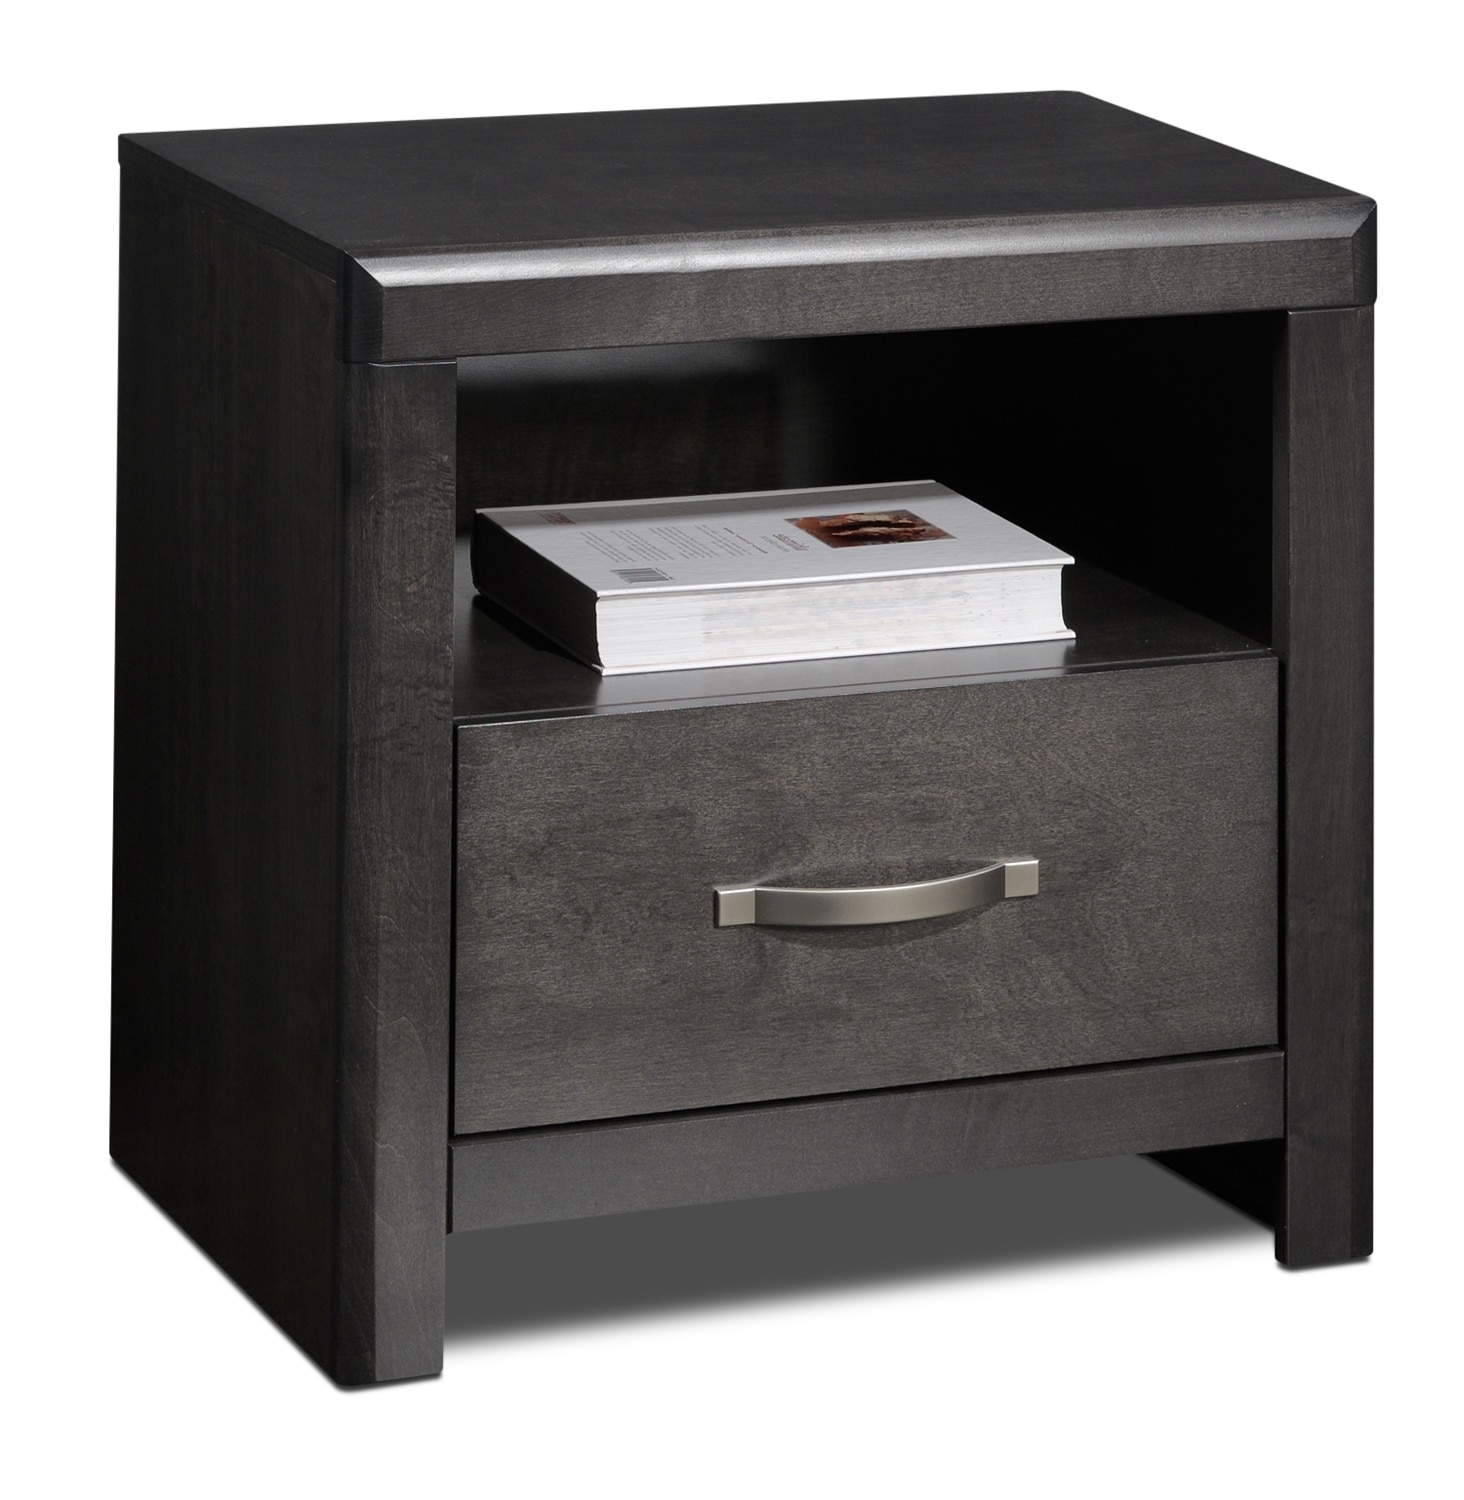 Bedroom Furniture - Dessy Night Table - Charcoal